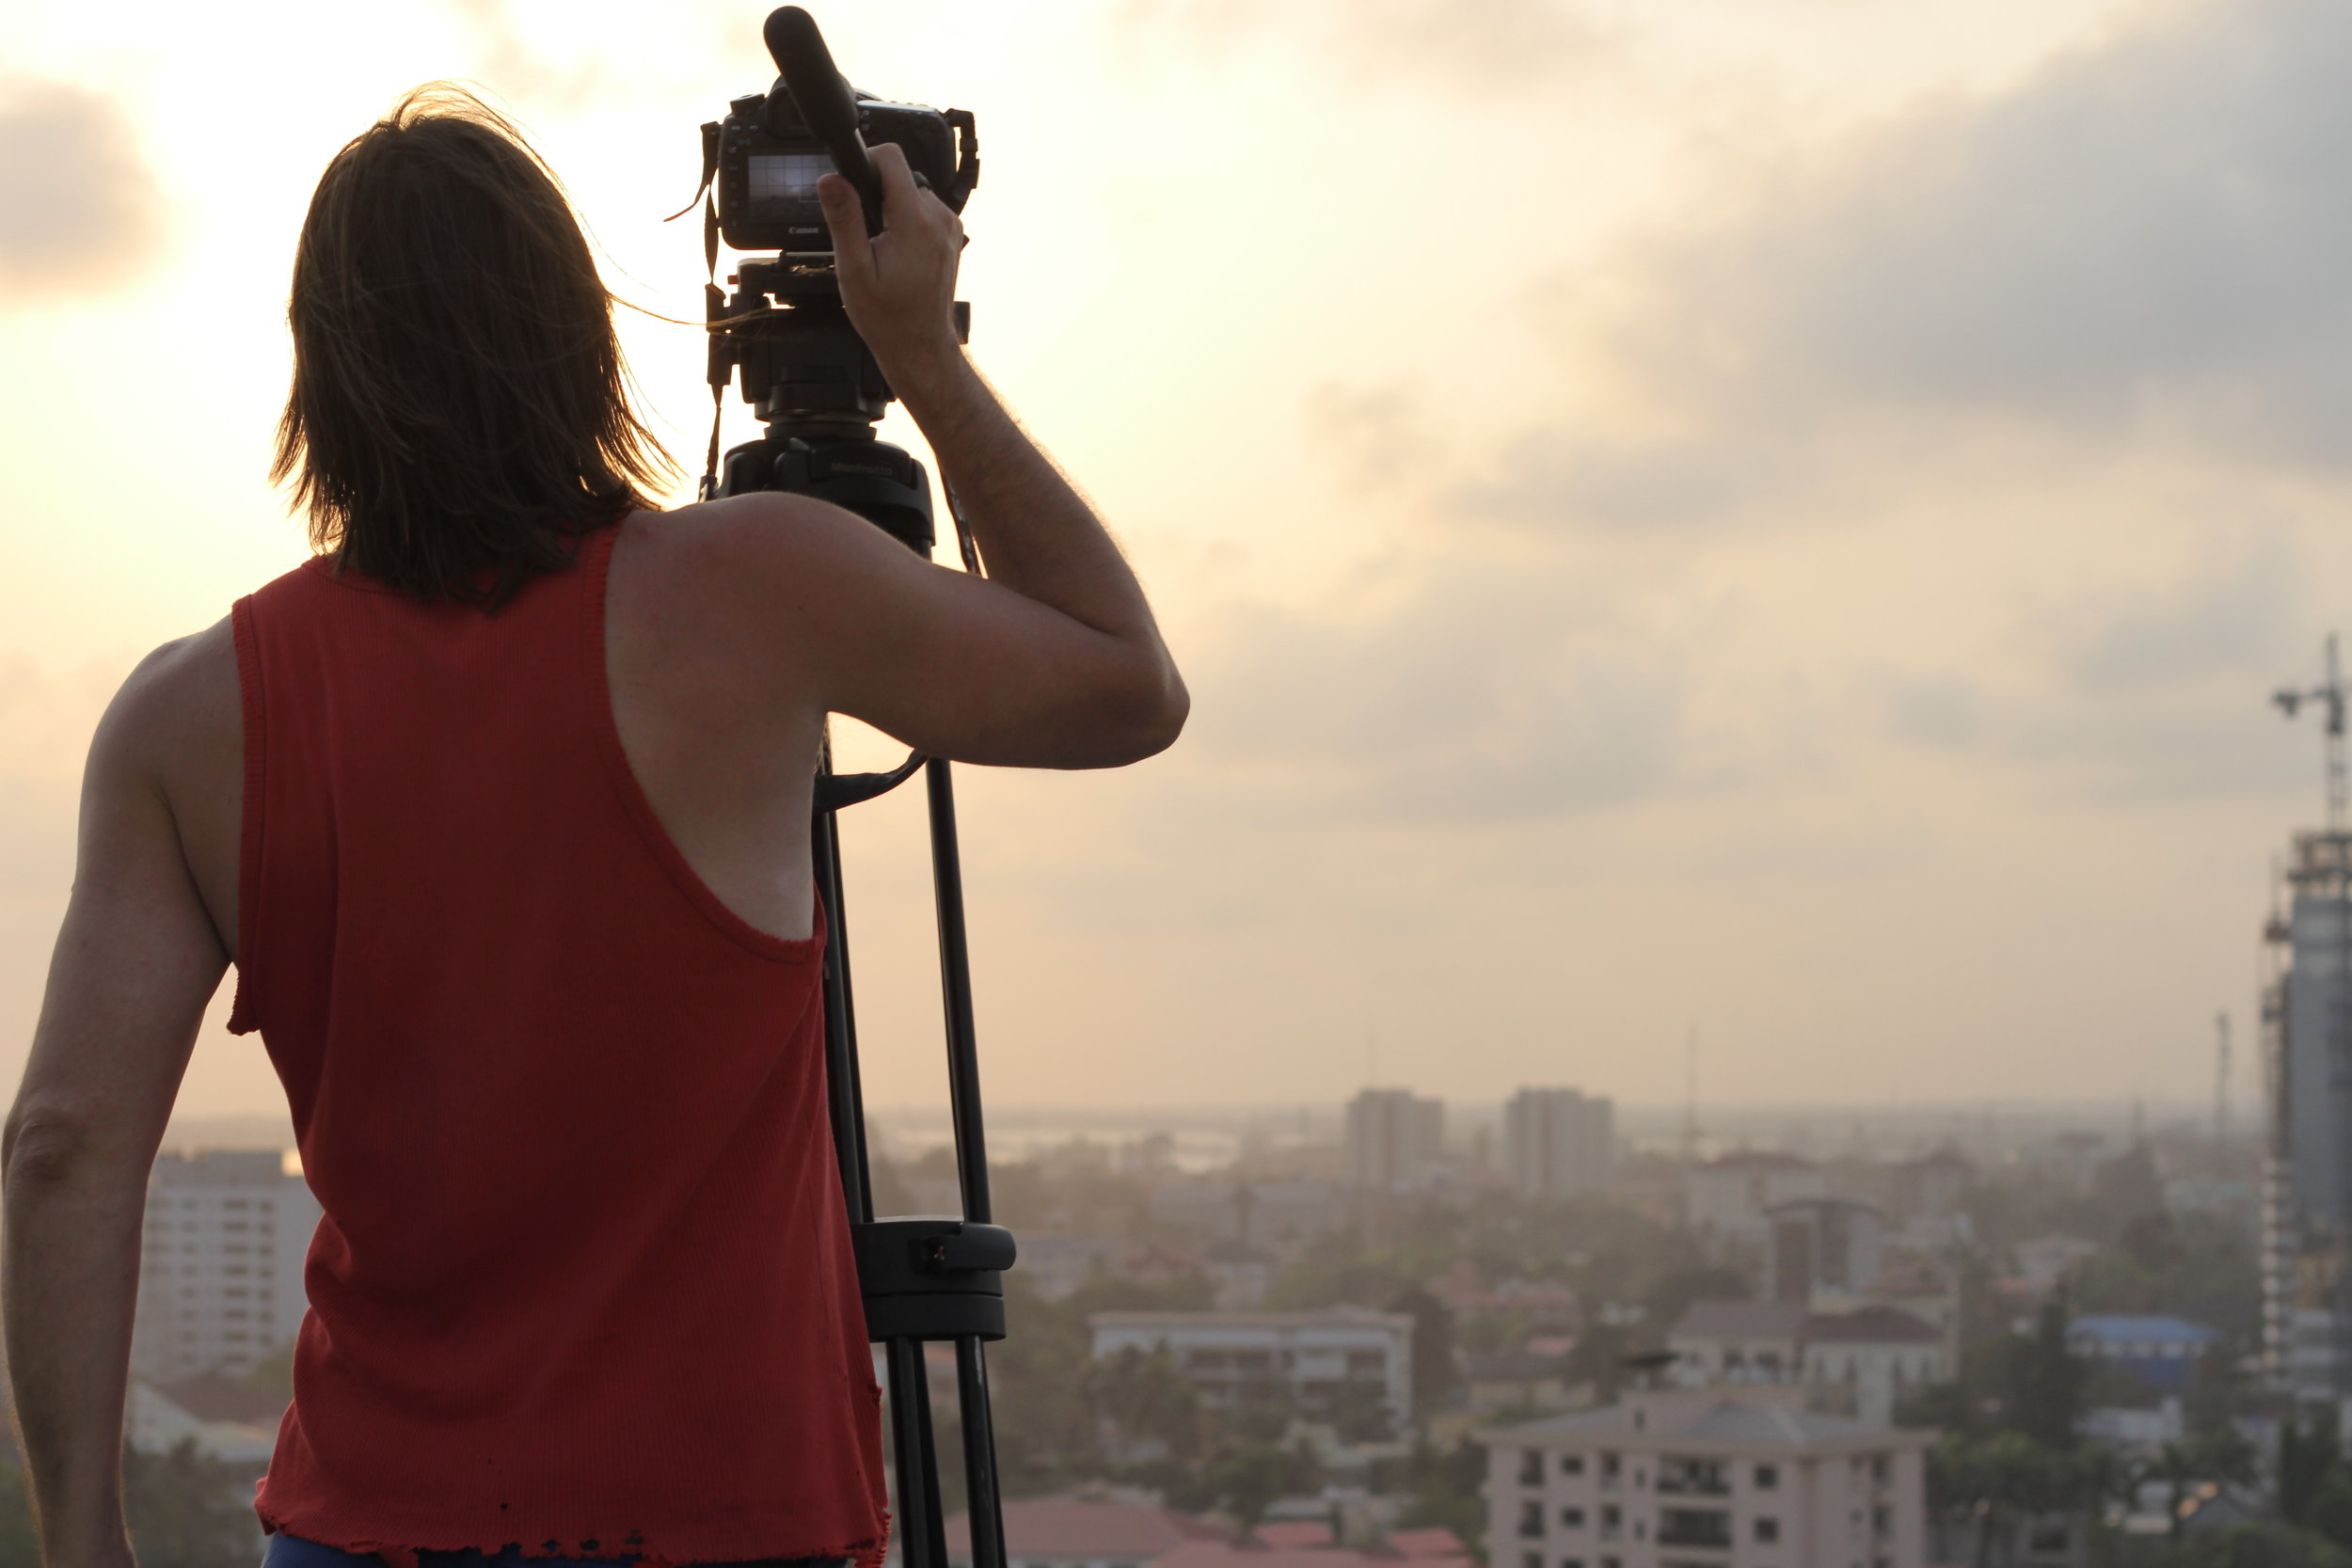 Filming sunsets in Lagos